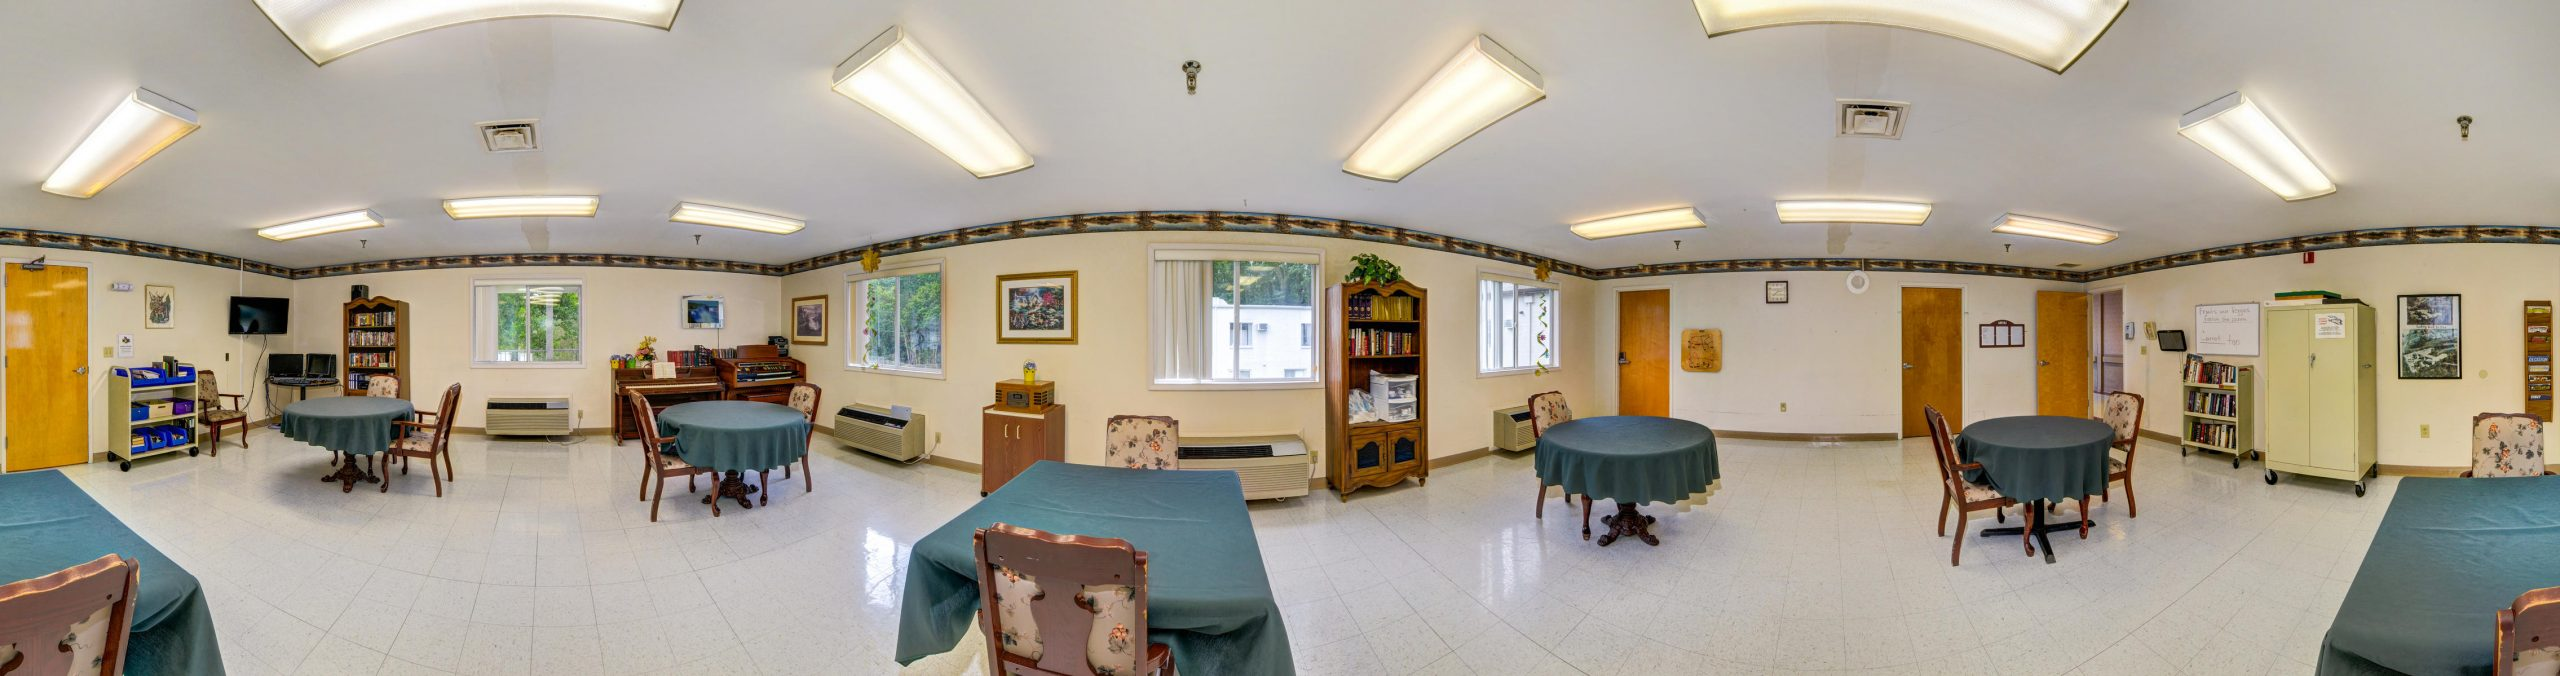 Panoramic view of Stonerise Berkeley Springs library and internet cafe with tables and bookshelves